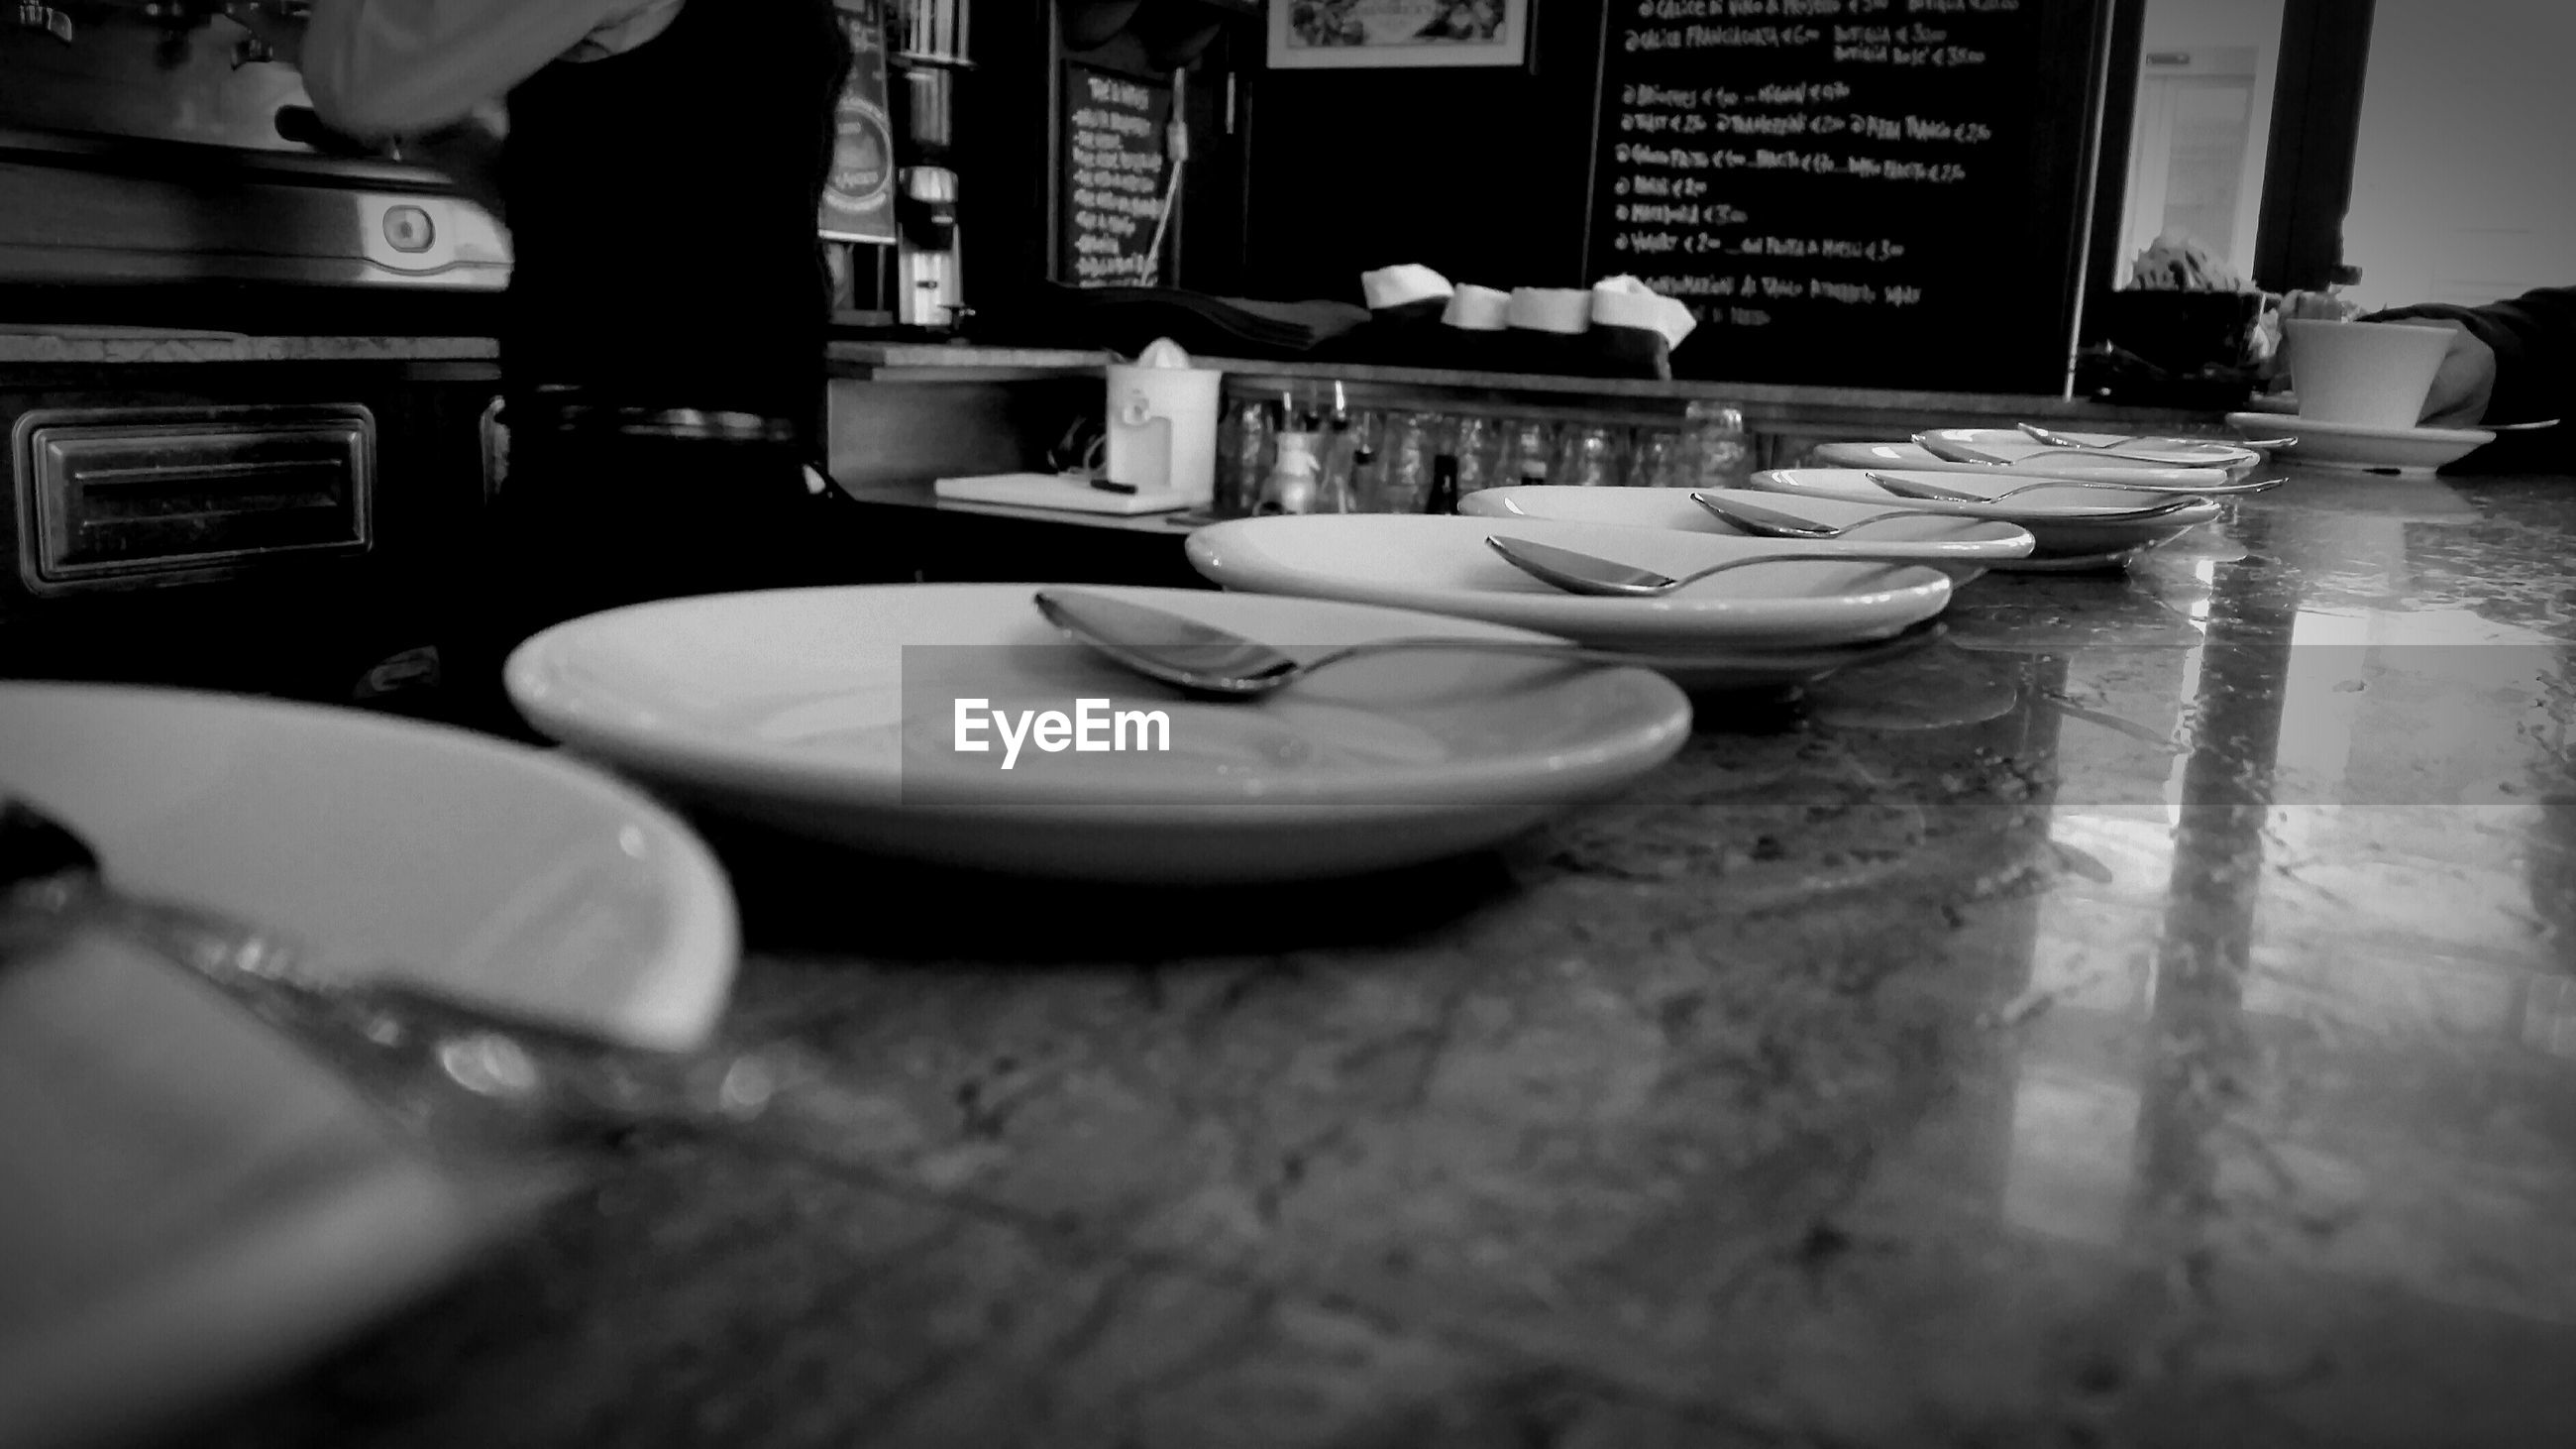 indoors, communication, text, table, food and drink, western script, still life, close-up, selective focus, book, food, paper, restaurant, focus on foreground, non-western script, one person, freshness, education, business